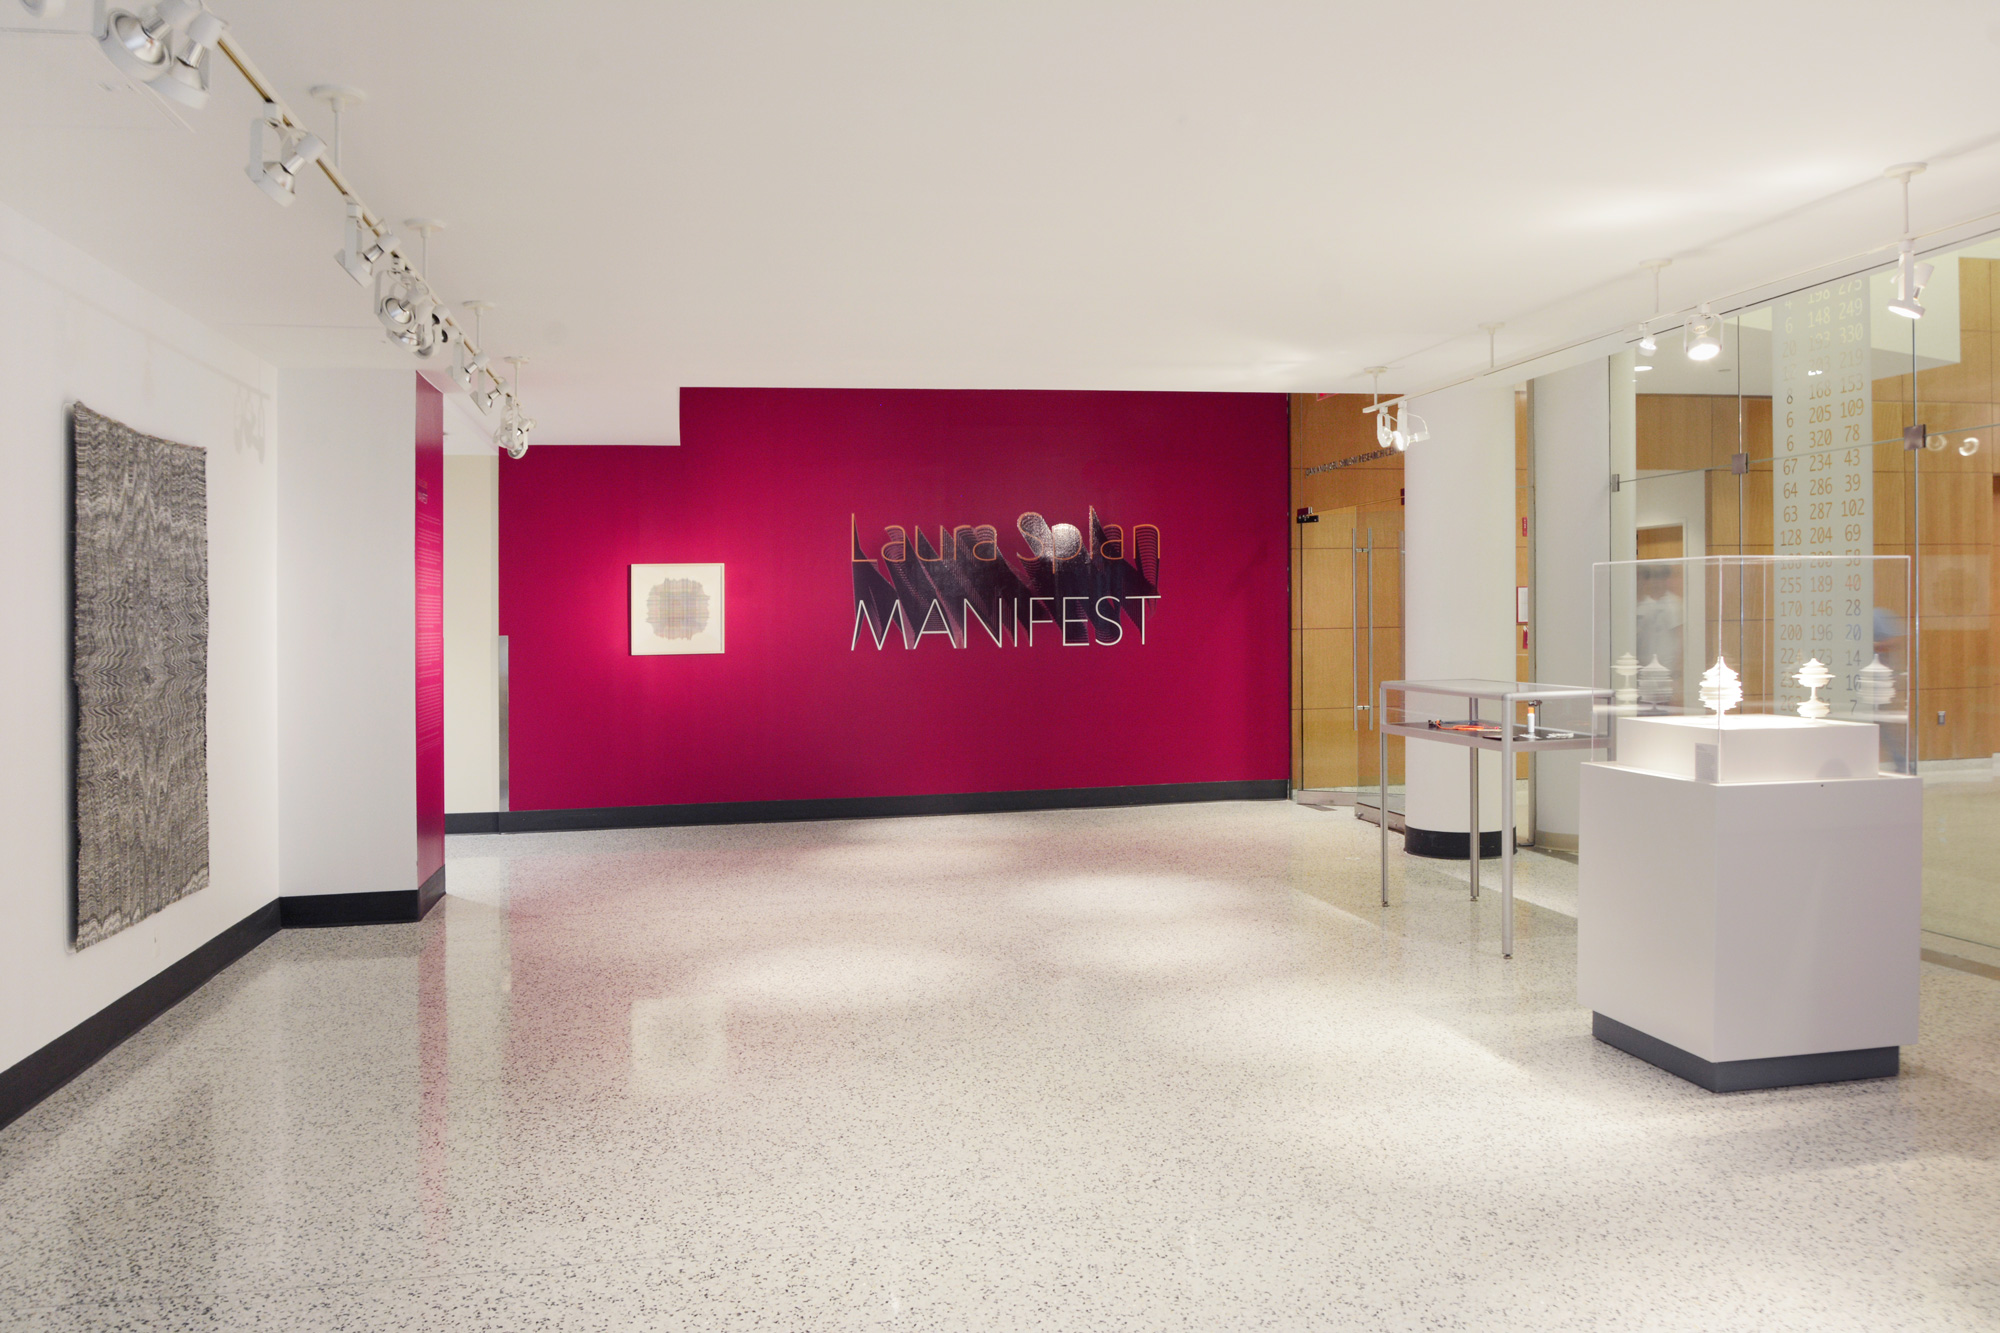 Solo Exhibition at the NYU Langone Medical Center Art